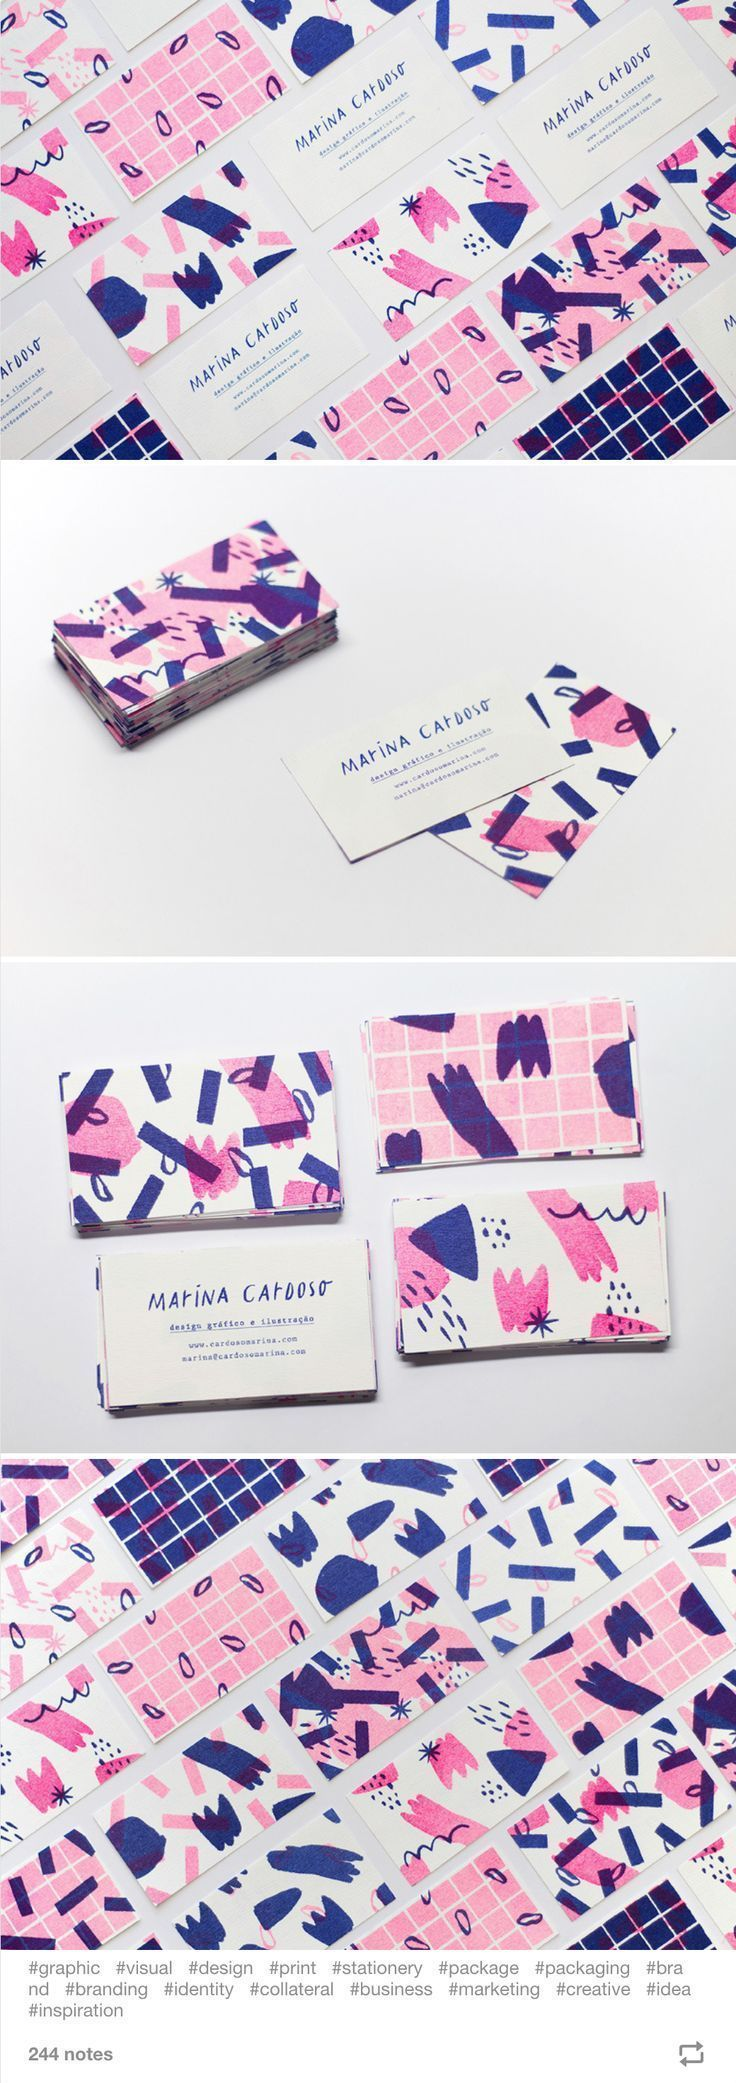 Creative-Advertising-graphic-visual-design-print-stationery-package-packaging Creative Advertising : graphic visual design print stationery package packaging brand branding identity...